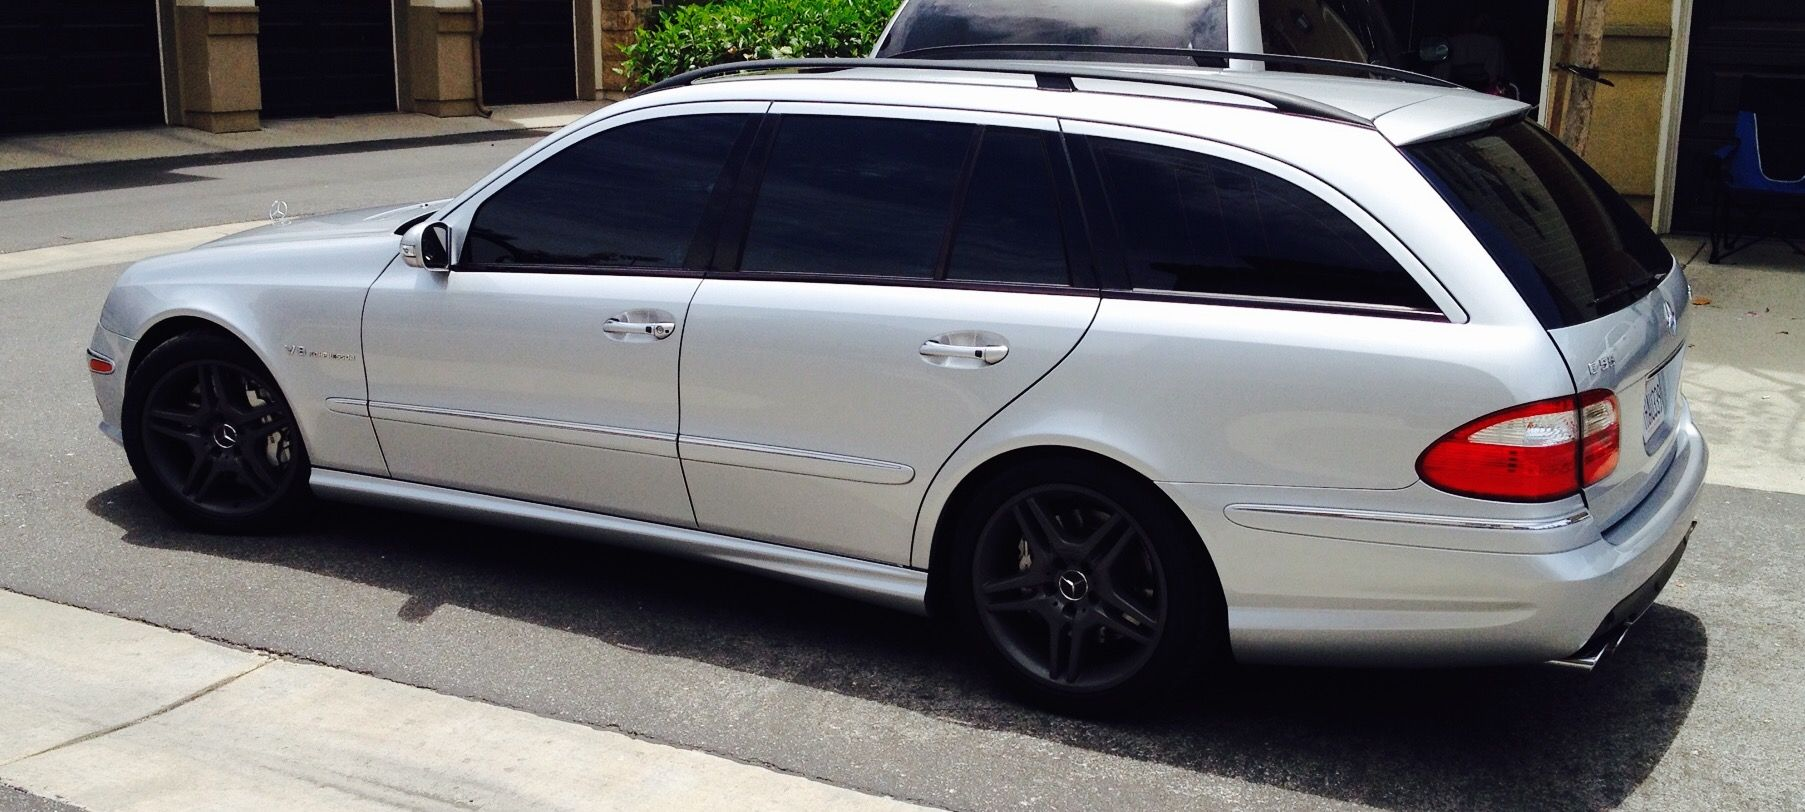 2006 E55 AMG wagon | Vehicles | Mercedes benz, E55 amg, Benz